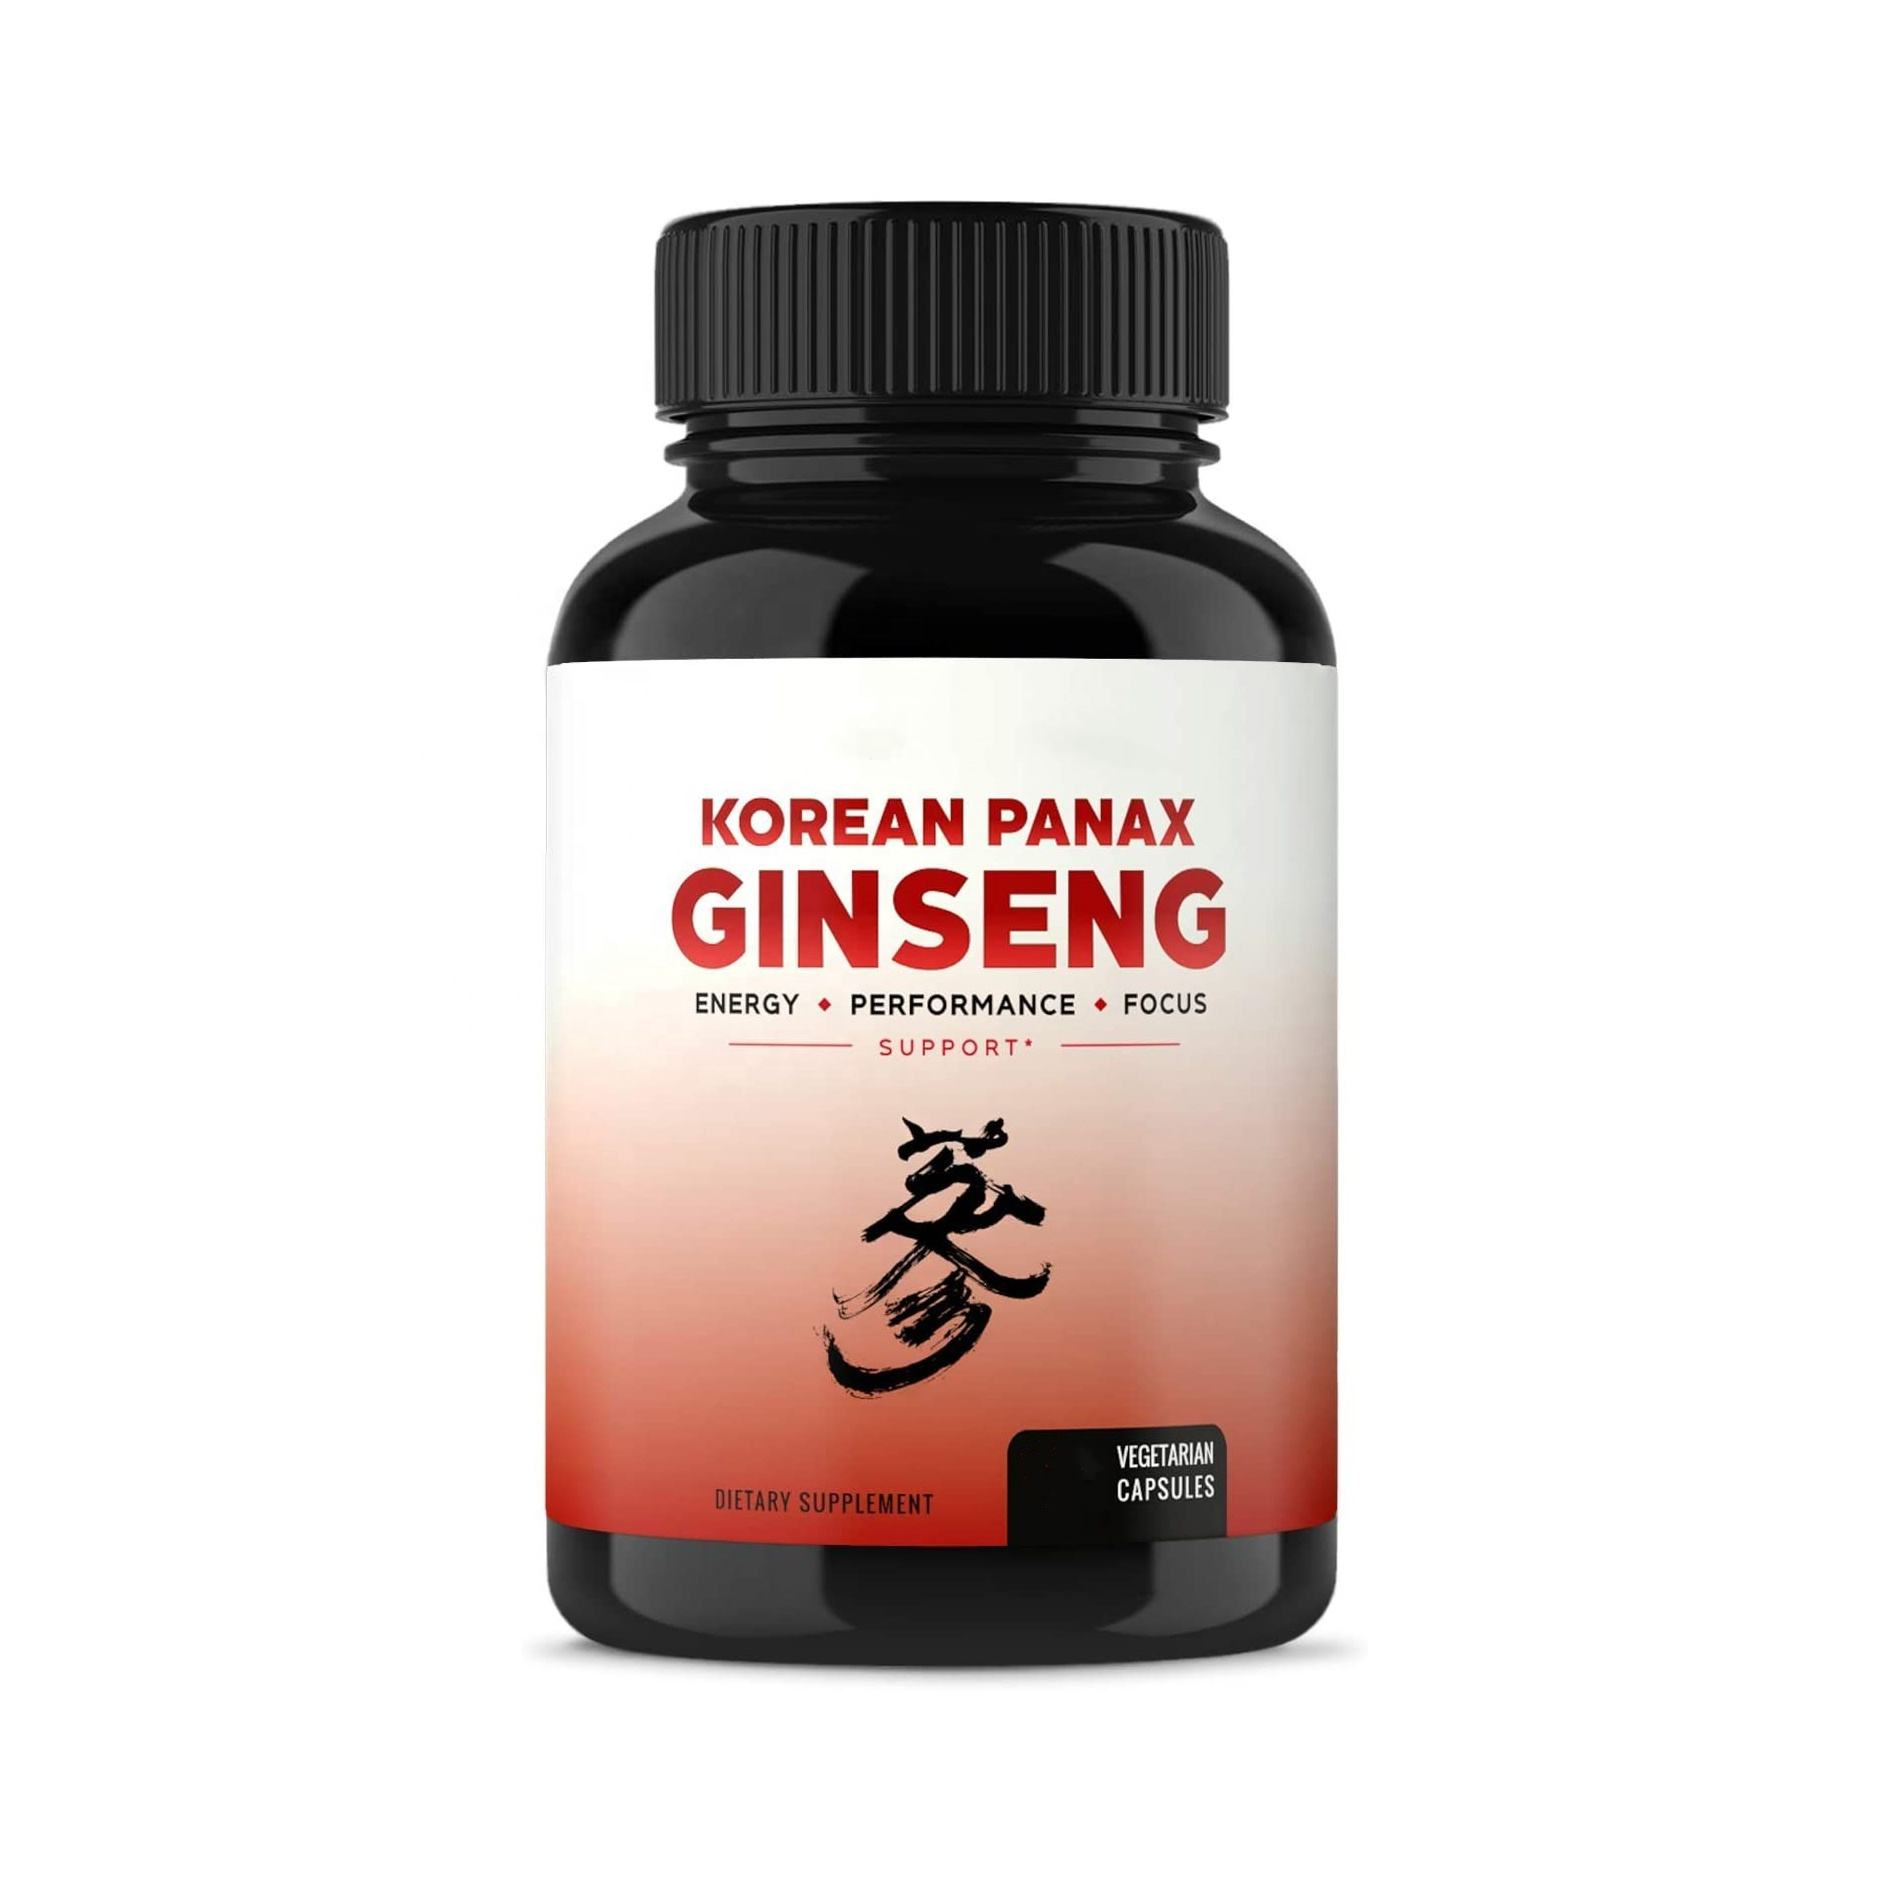 Korean Red Panax Ginseng 1000mg 60 Capsules Extra Strength Root Extract Powder Supplement Focus Pills for Men & Women